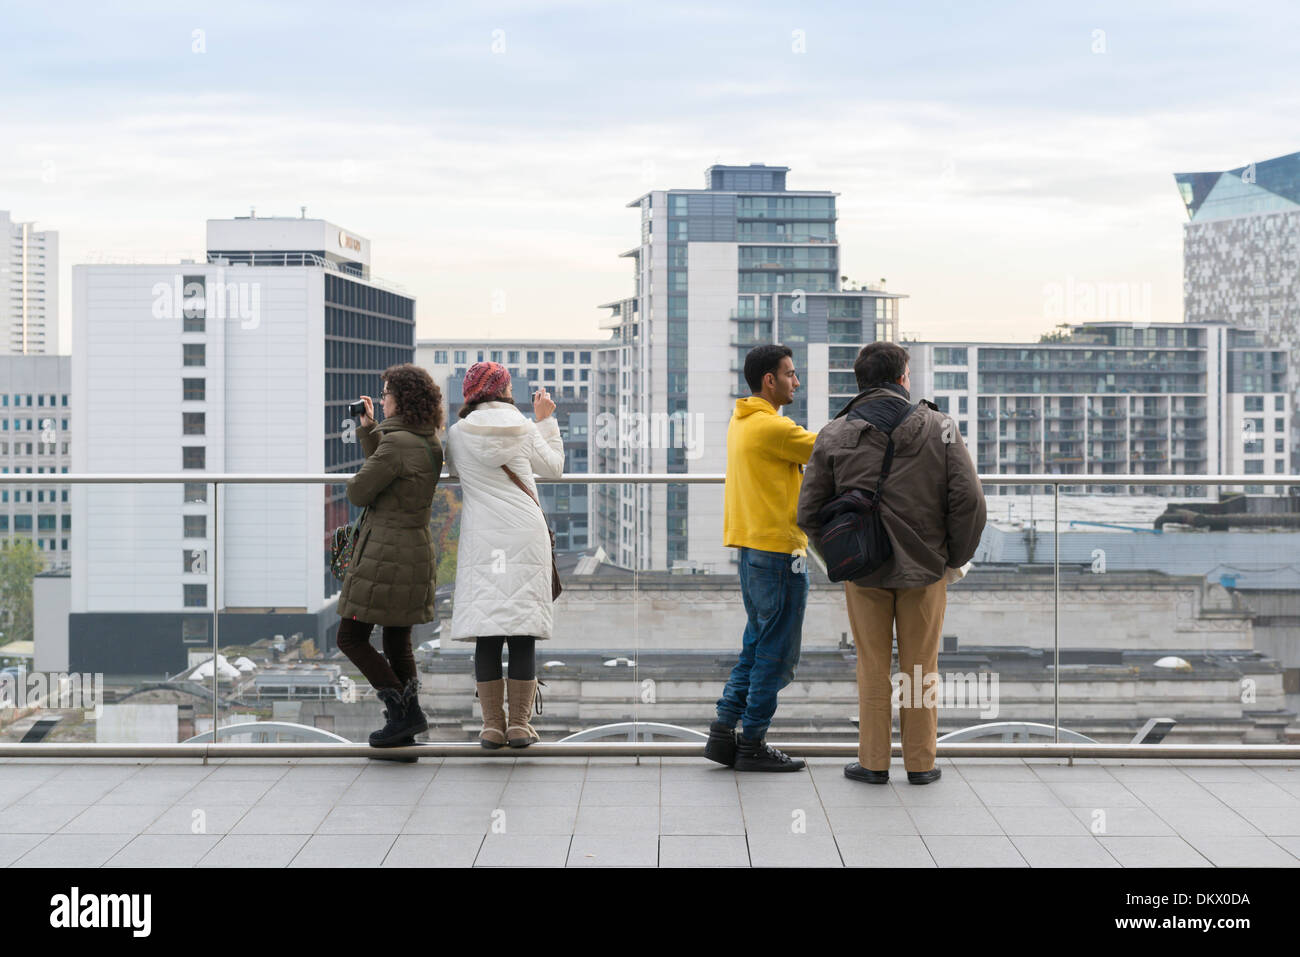 Visitors on the terrace of the new Library of Birmingham, England. - Stock Image